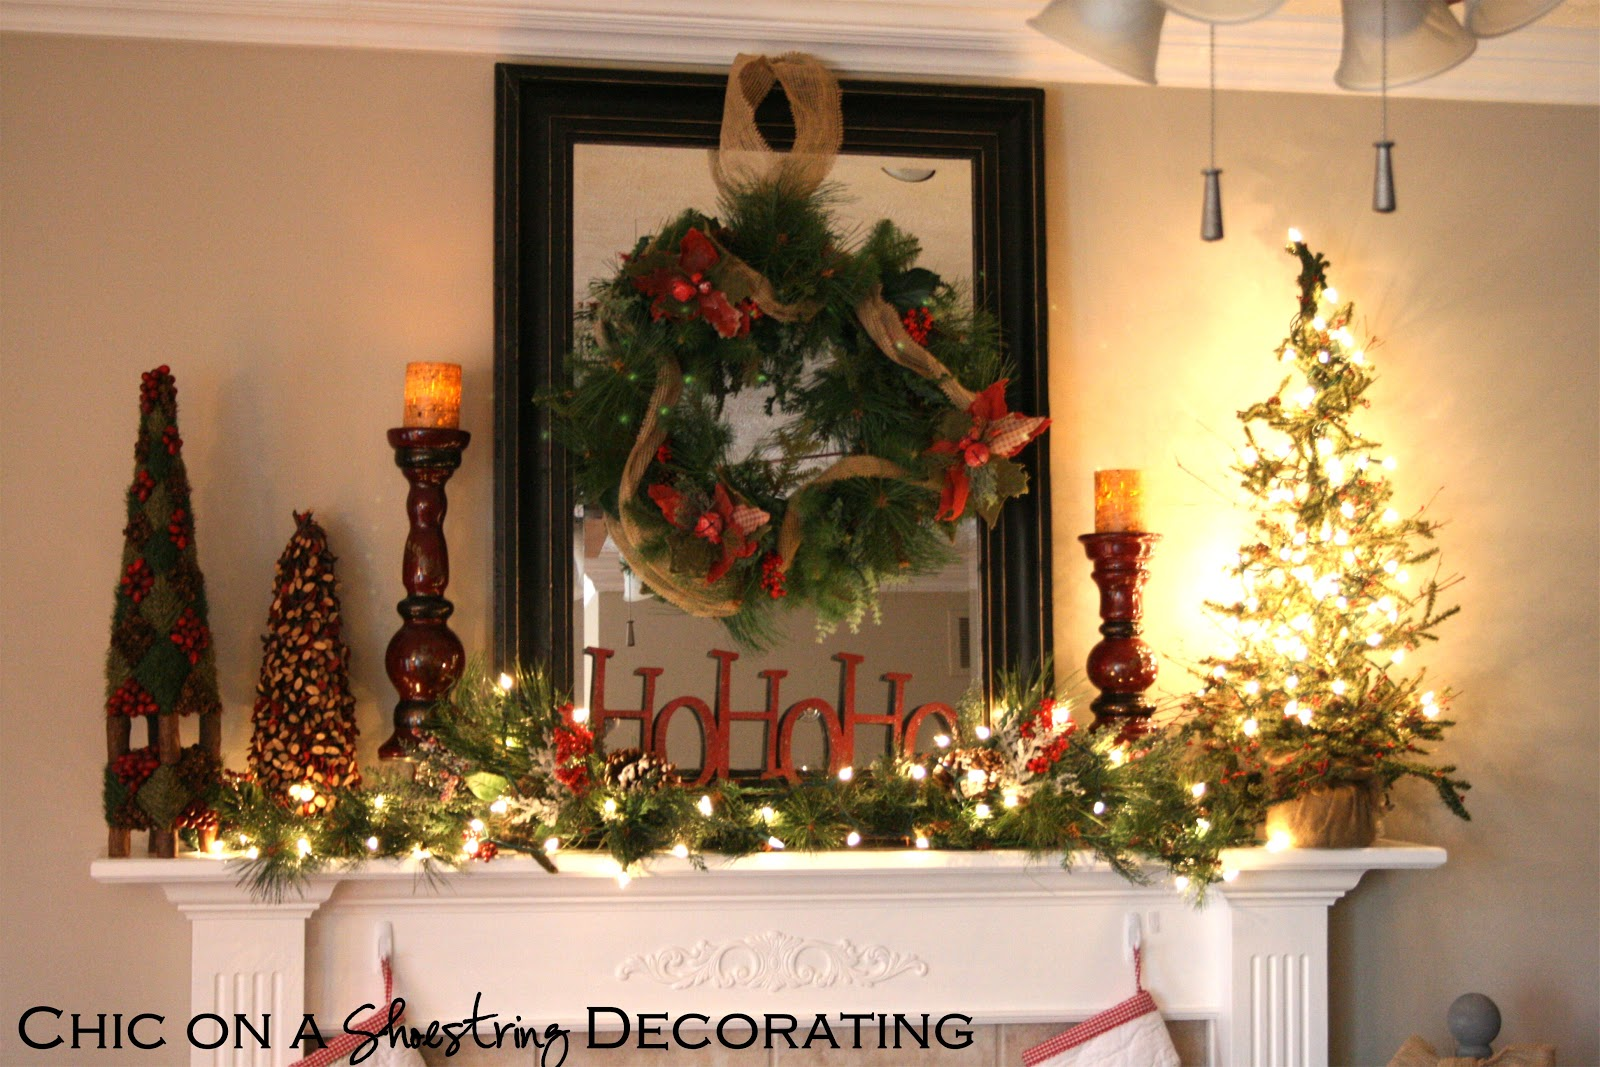 Chic on a shoestring decorating rustic christmas mantel for Christmas home design